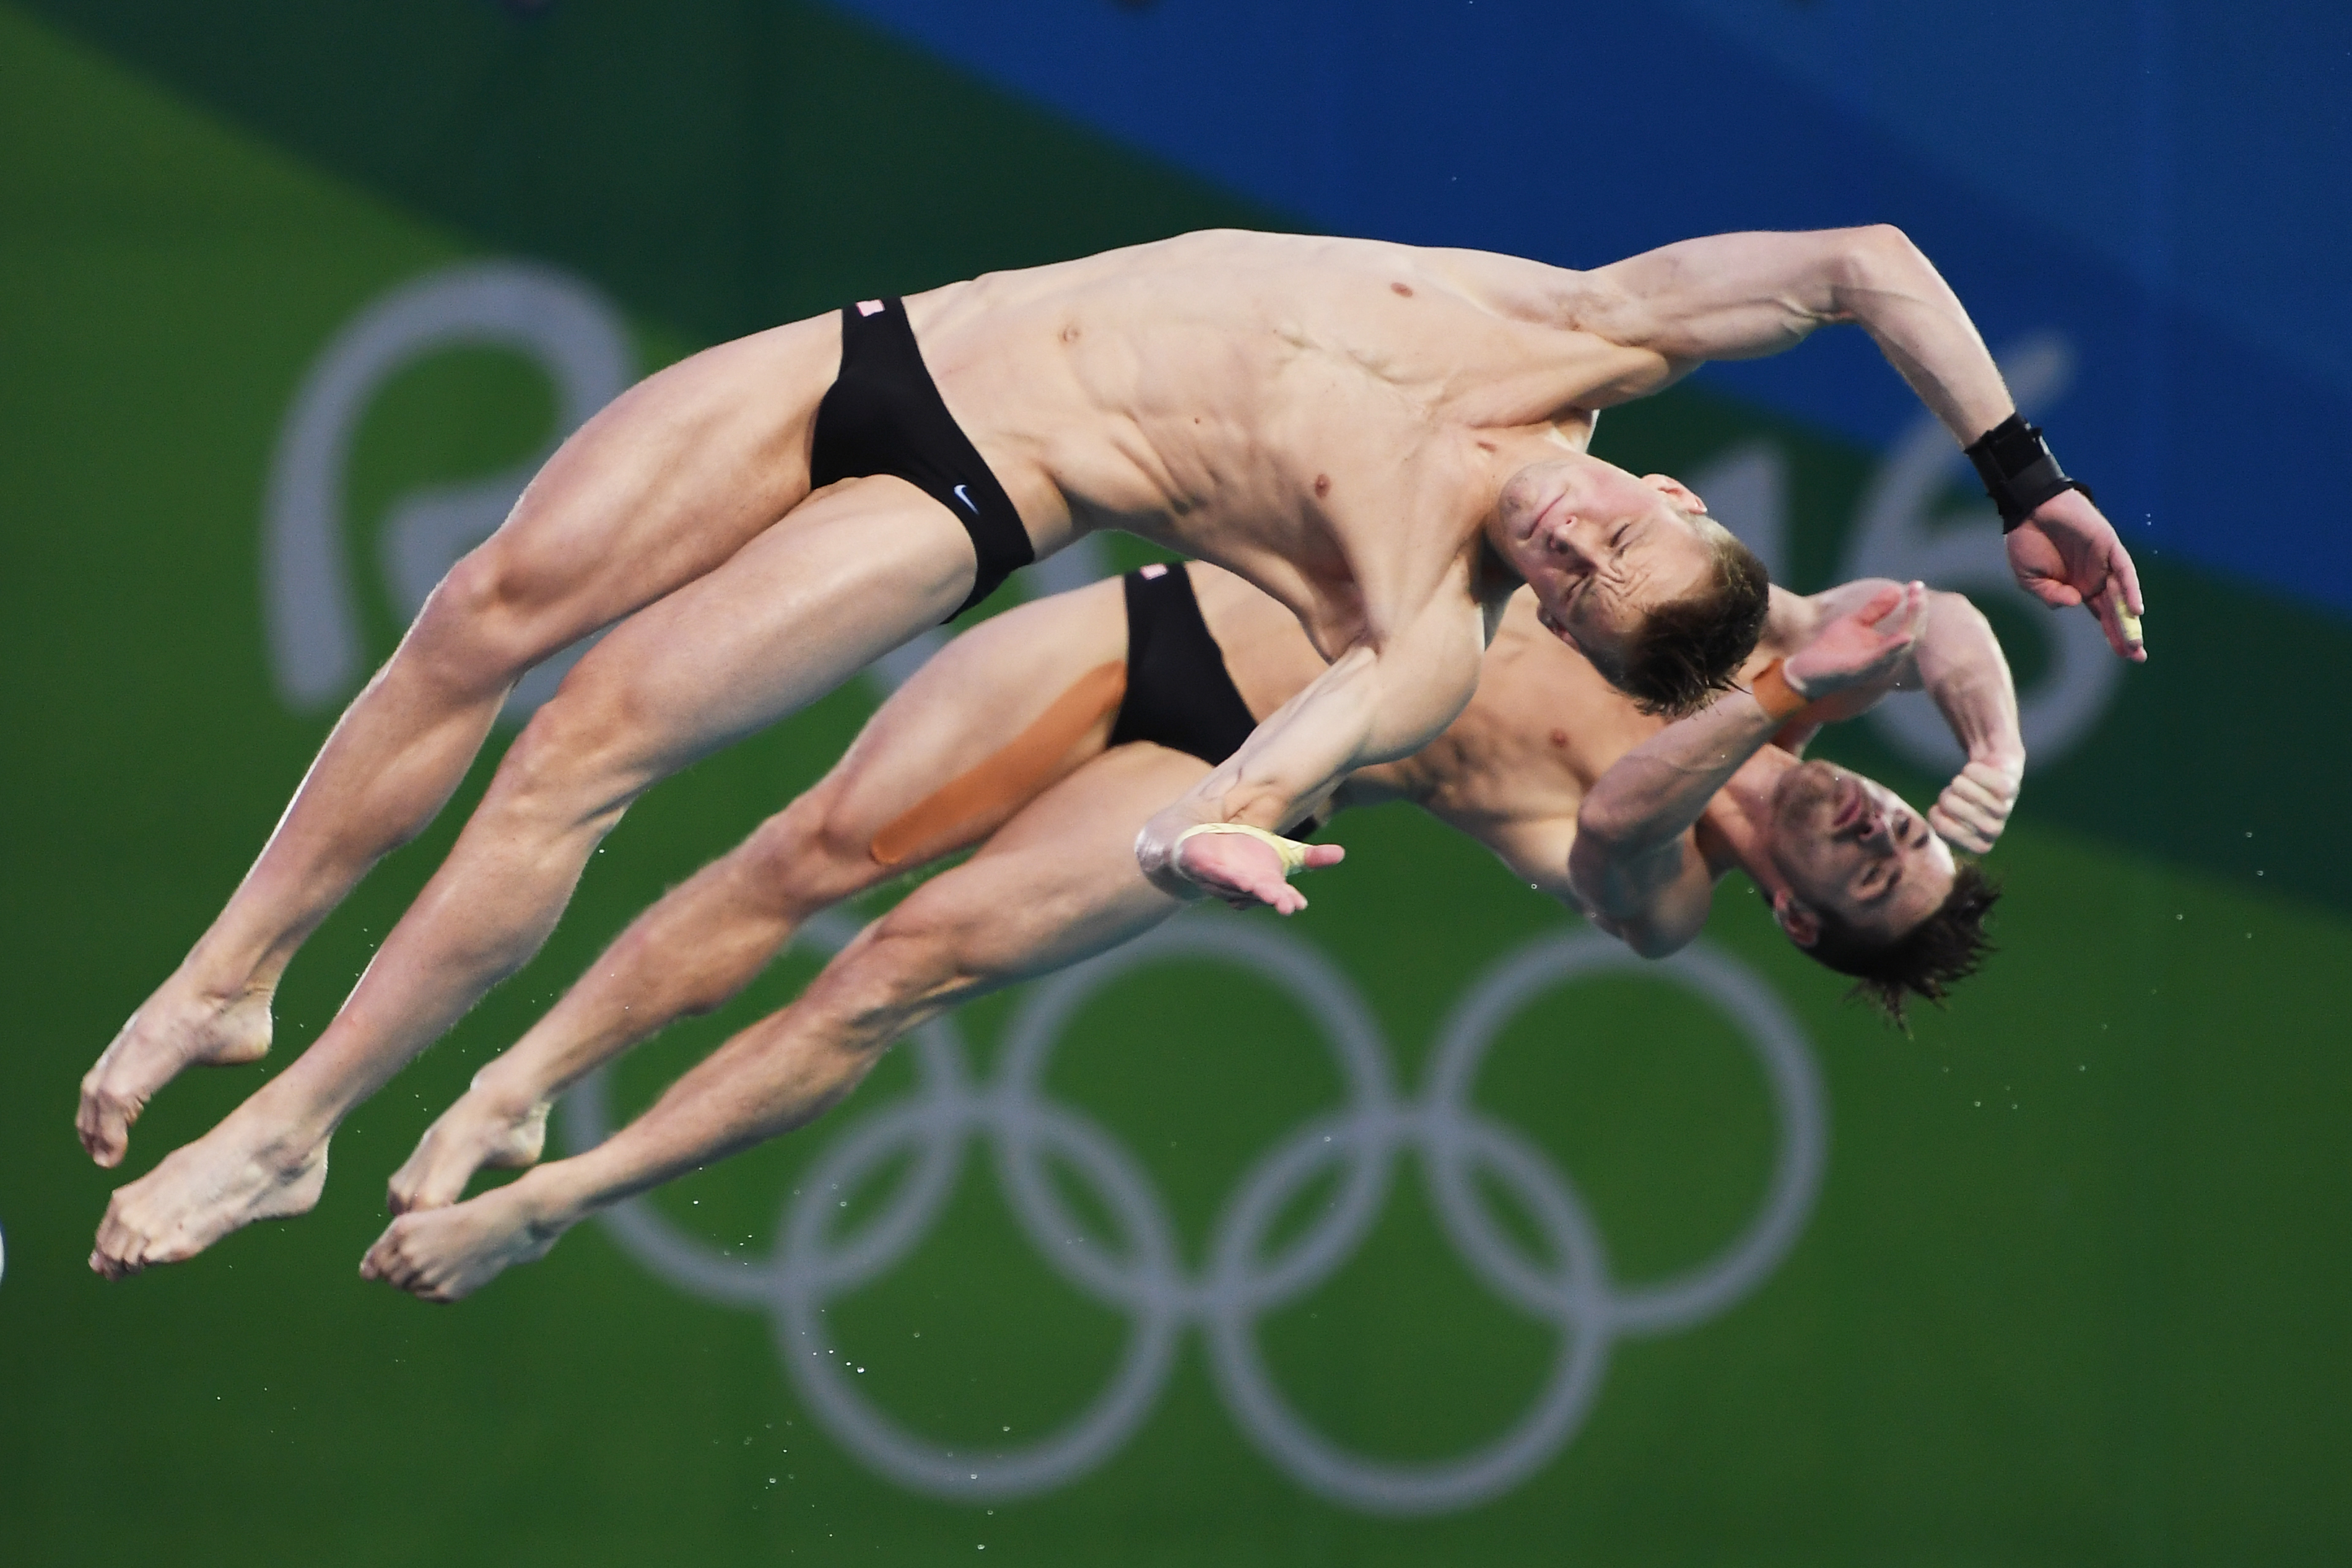 These Perfectly Timed Rio 2016 Screenshots Look A Lot Like Porn diving1